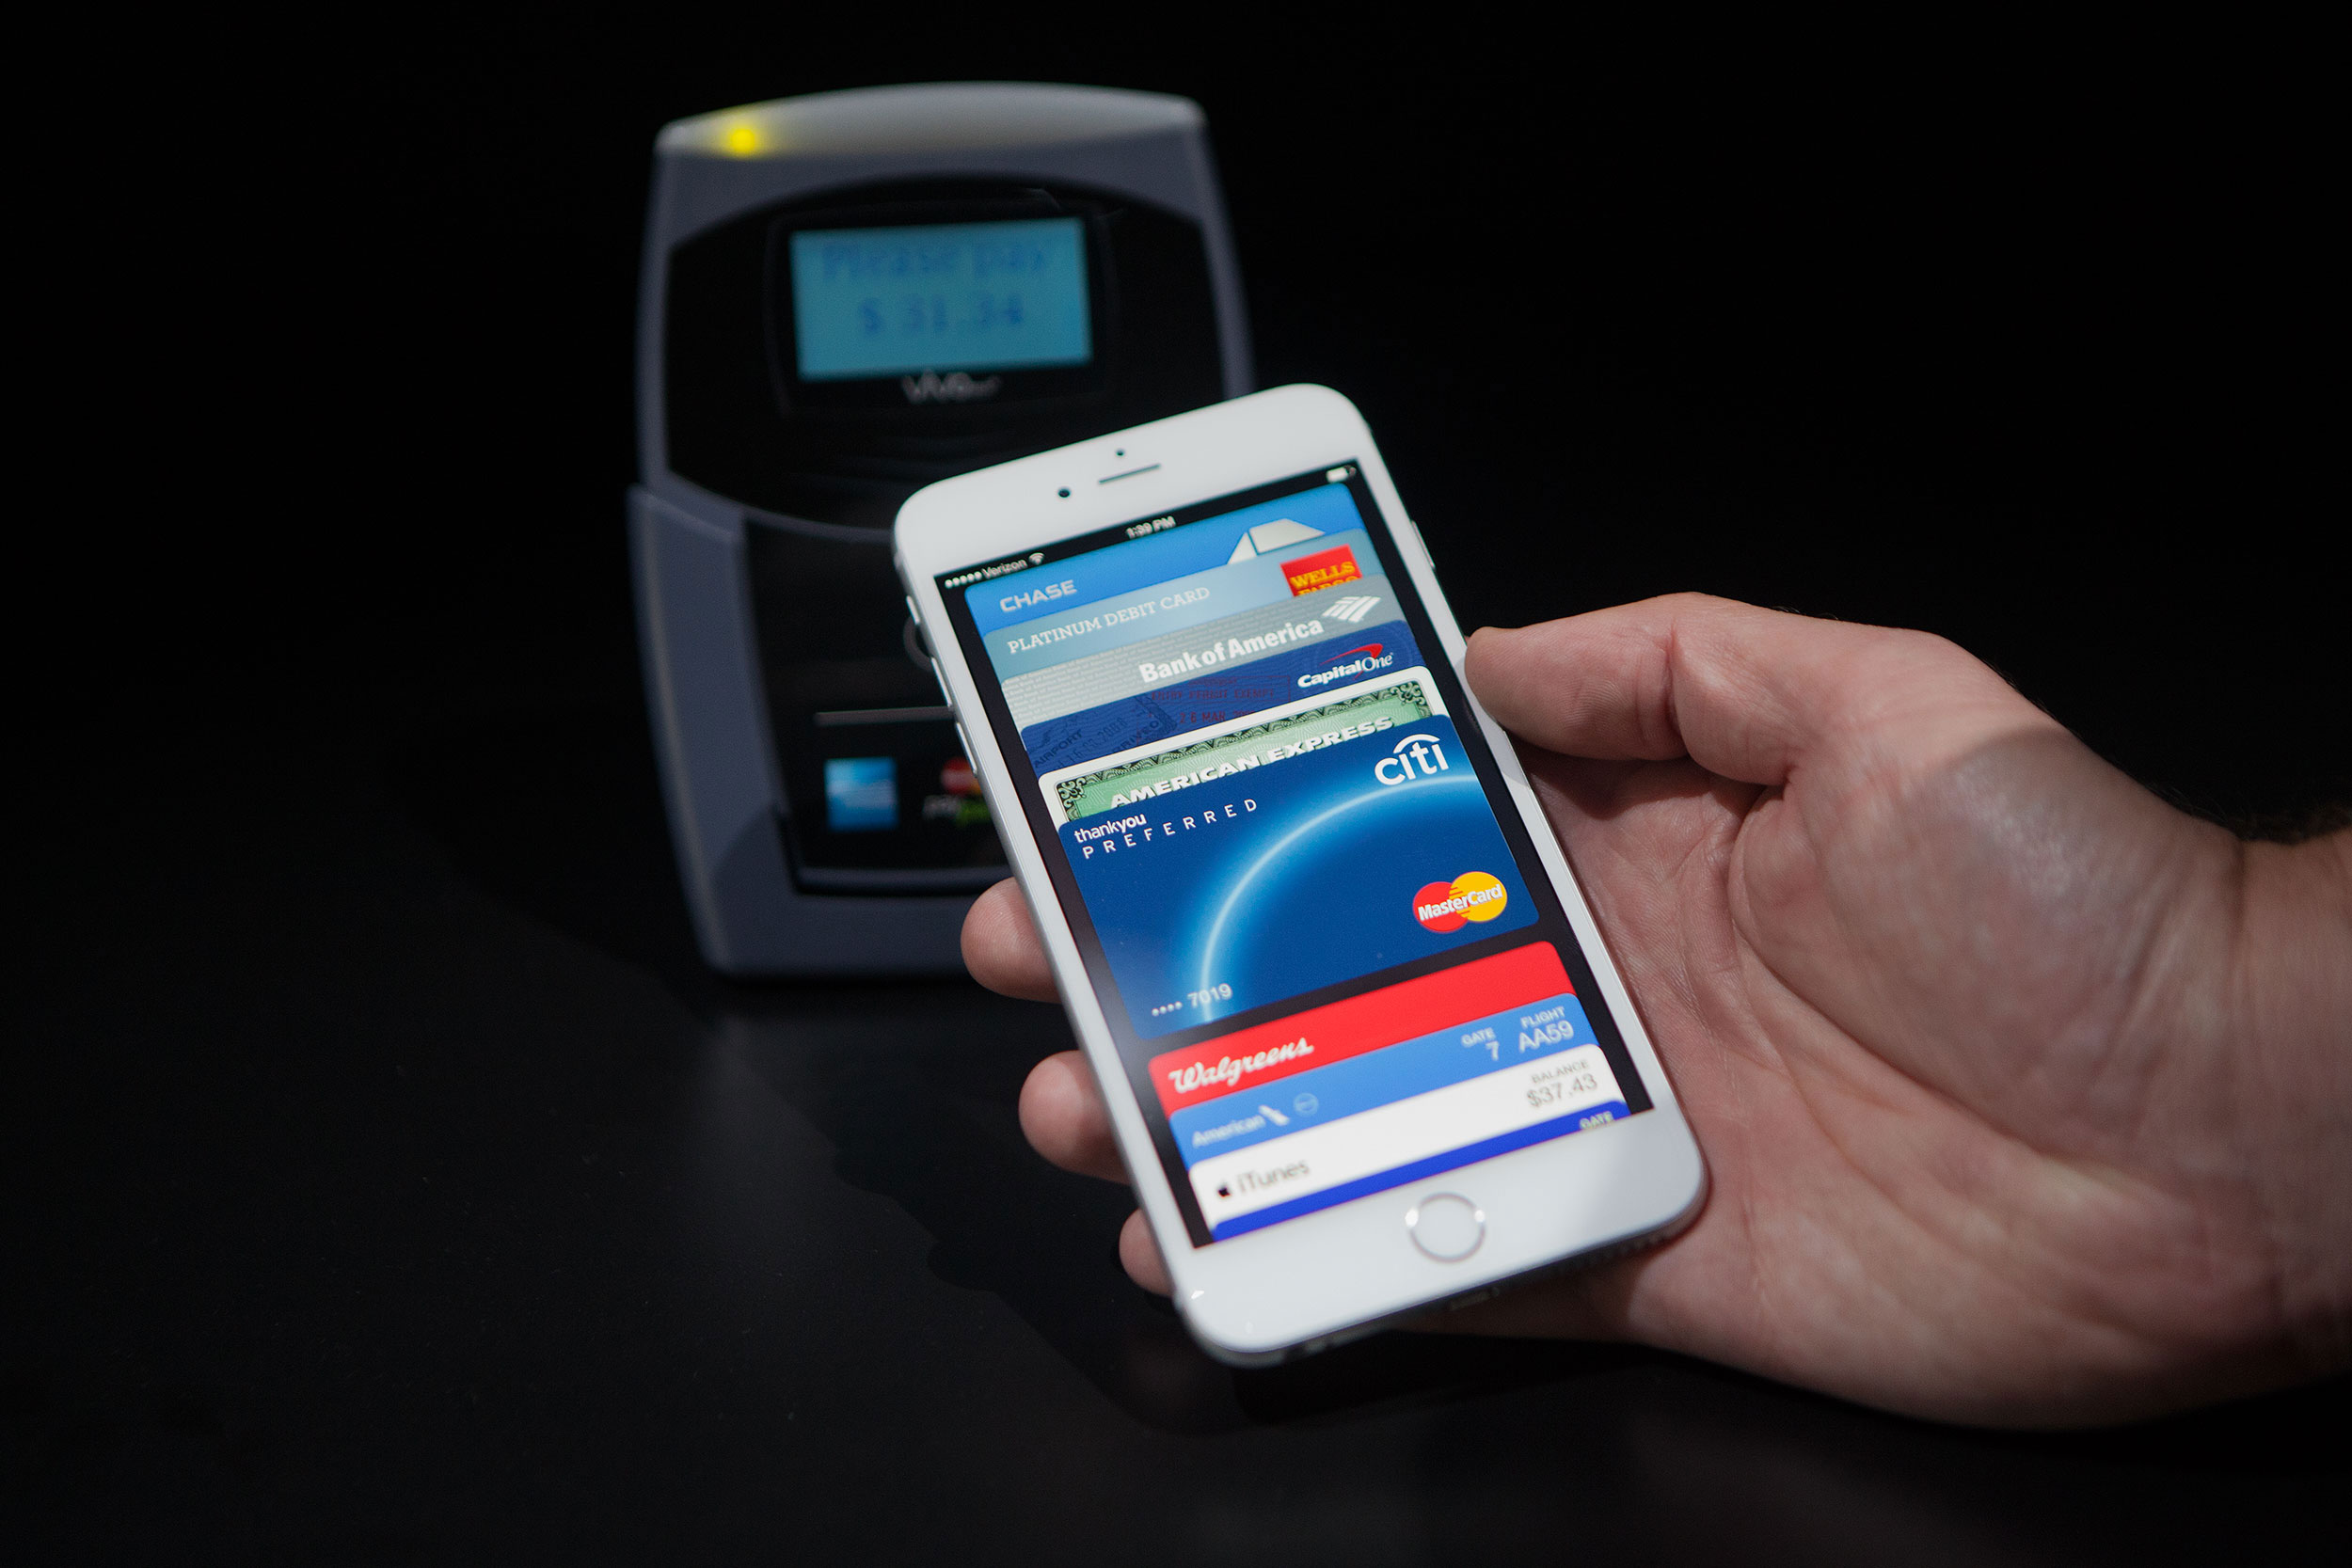 Top retailers still remain skeptical about Apple Pay